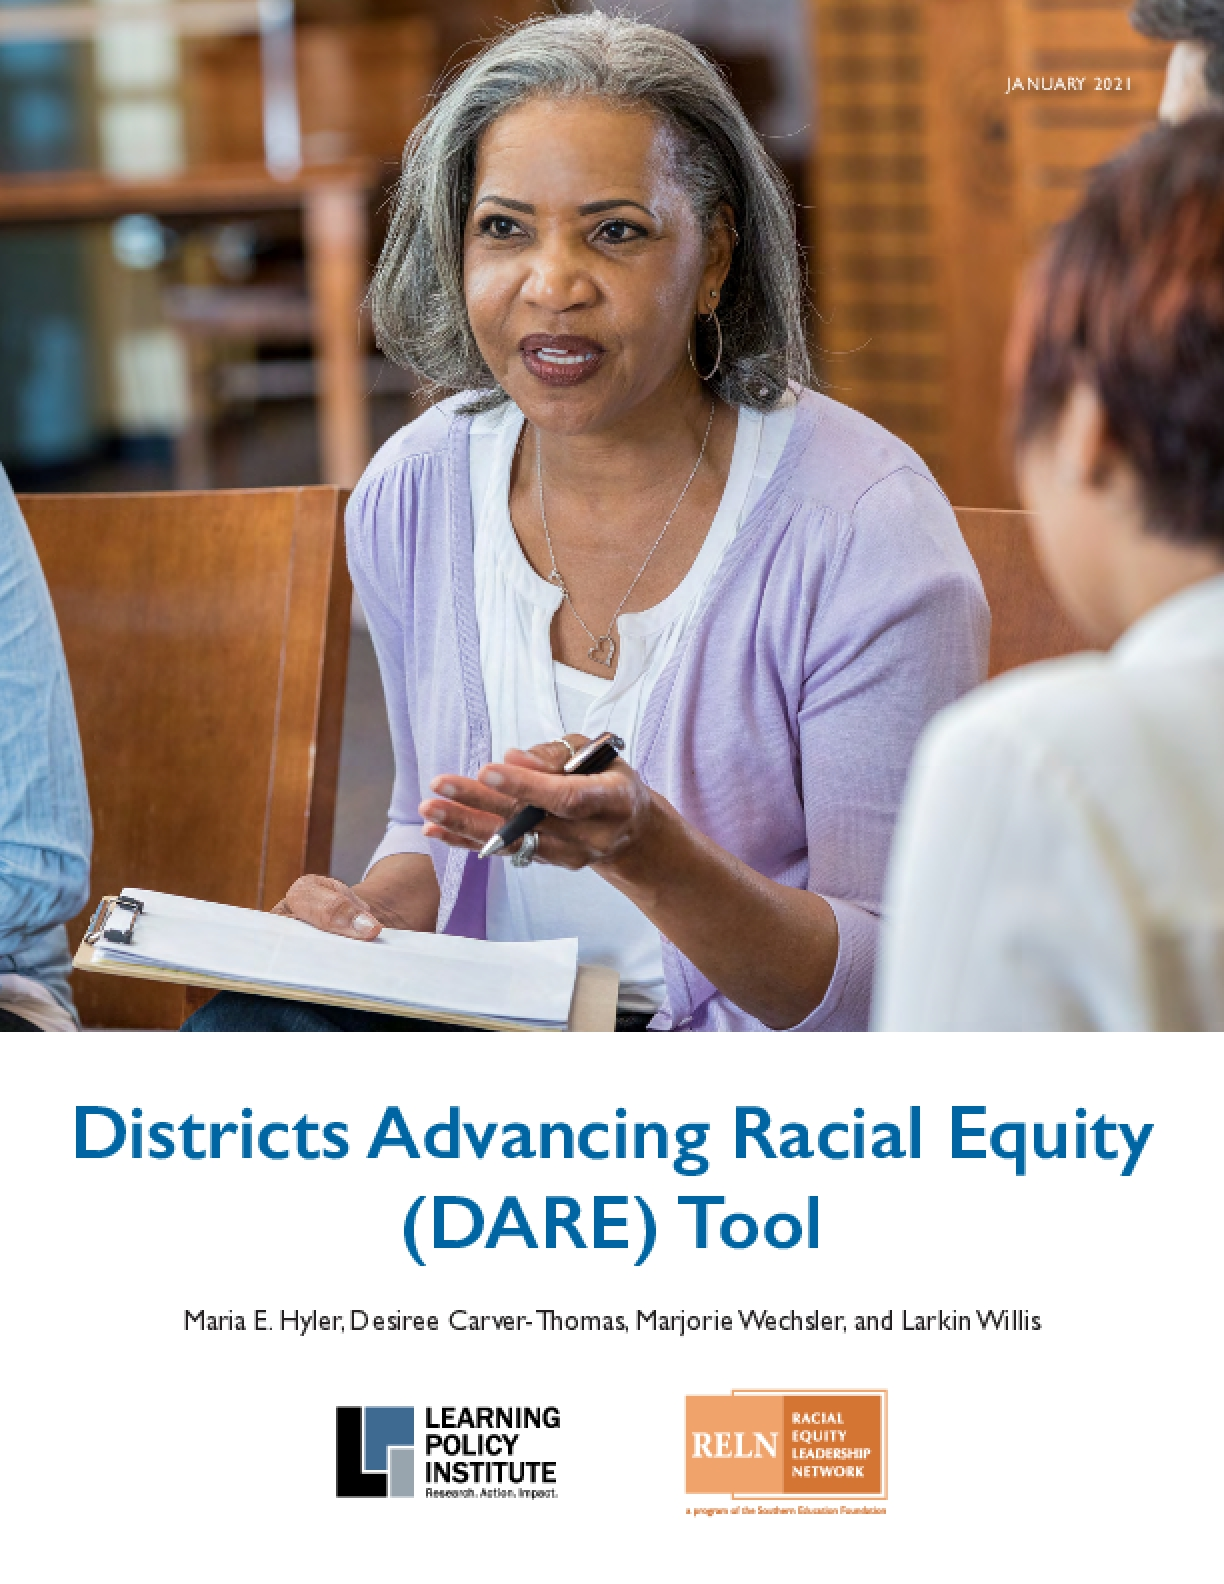 Districts Advancing Racial Equity (DARE) Tool